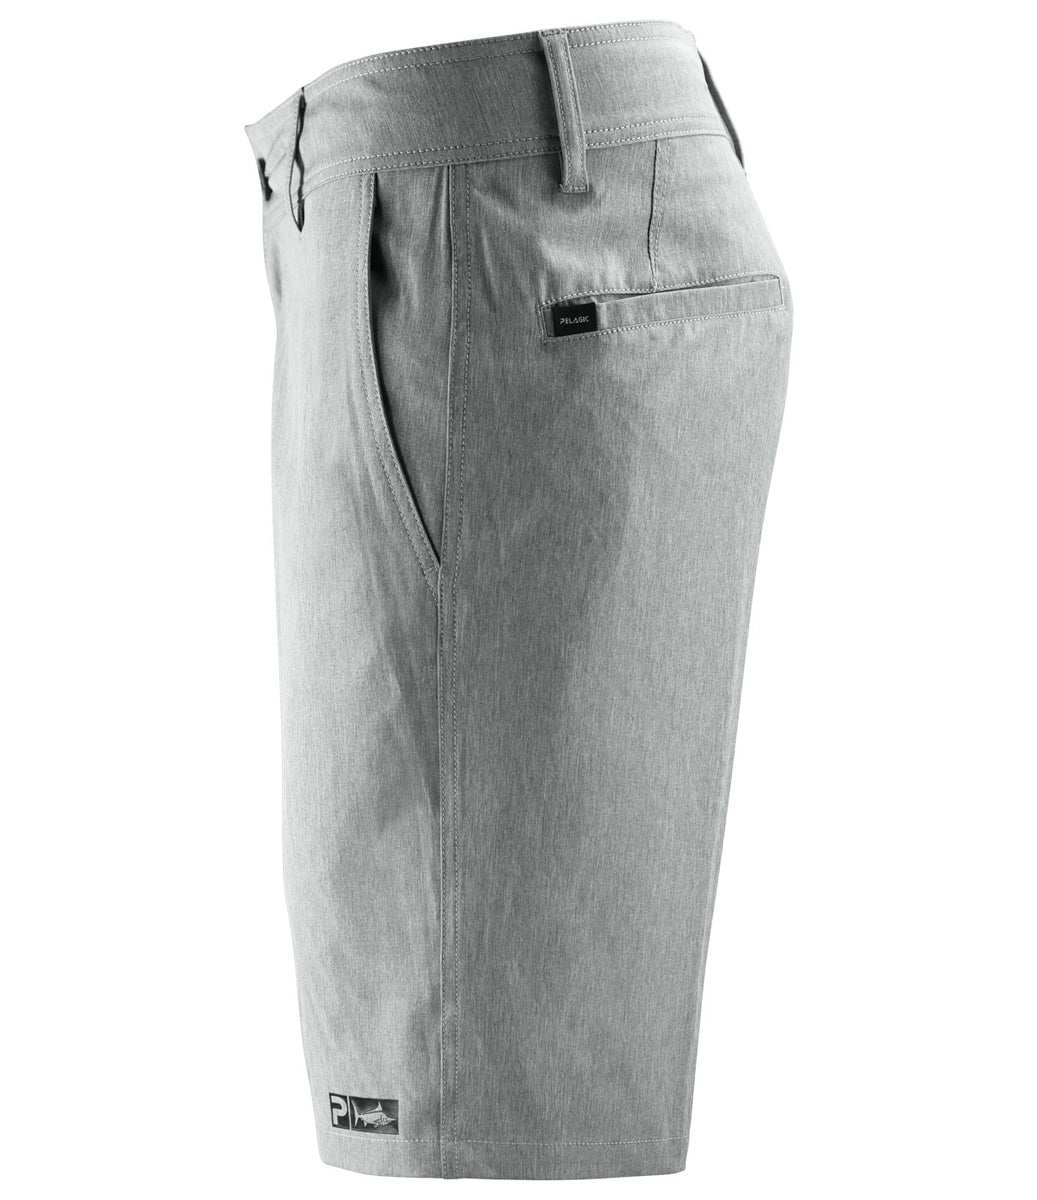 Deep Sea Hybrid Fishing Shorts Big Image - 6